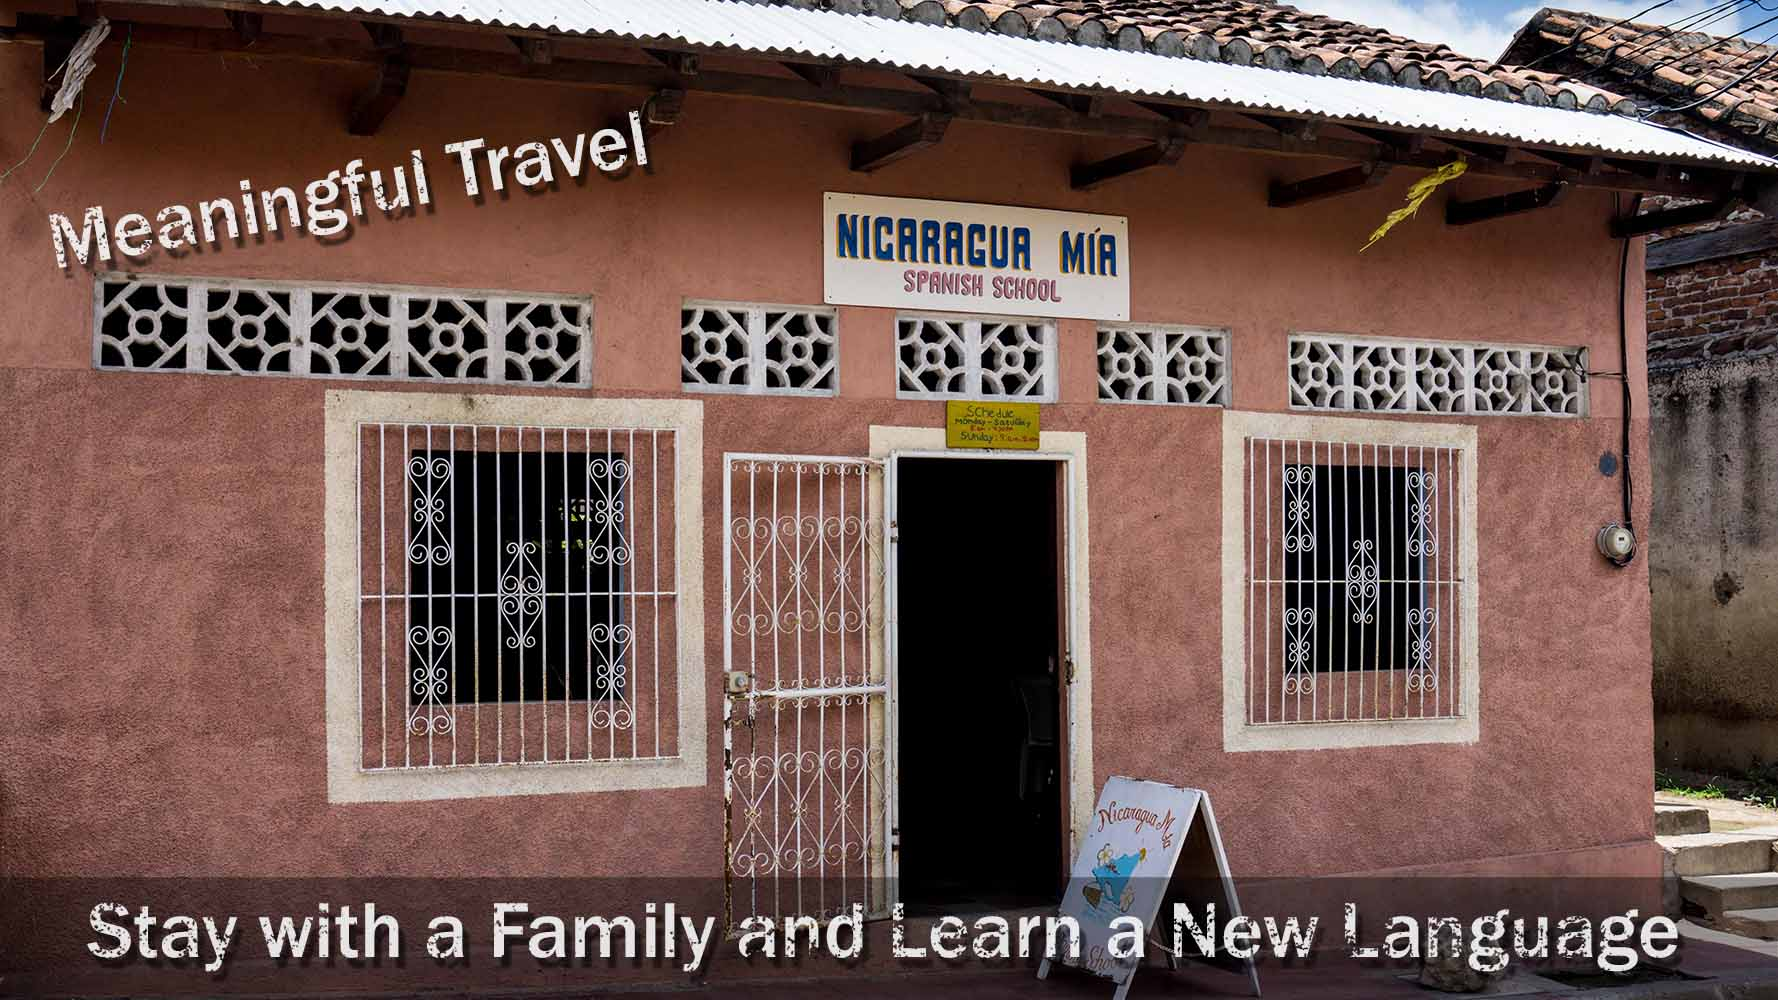 Meaningful Travel – Stay With A Family And Learn A New Language